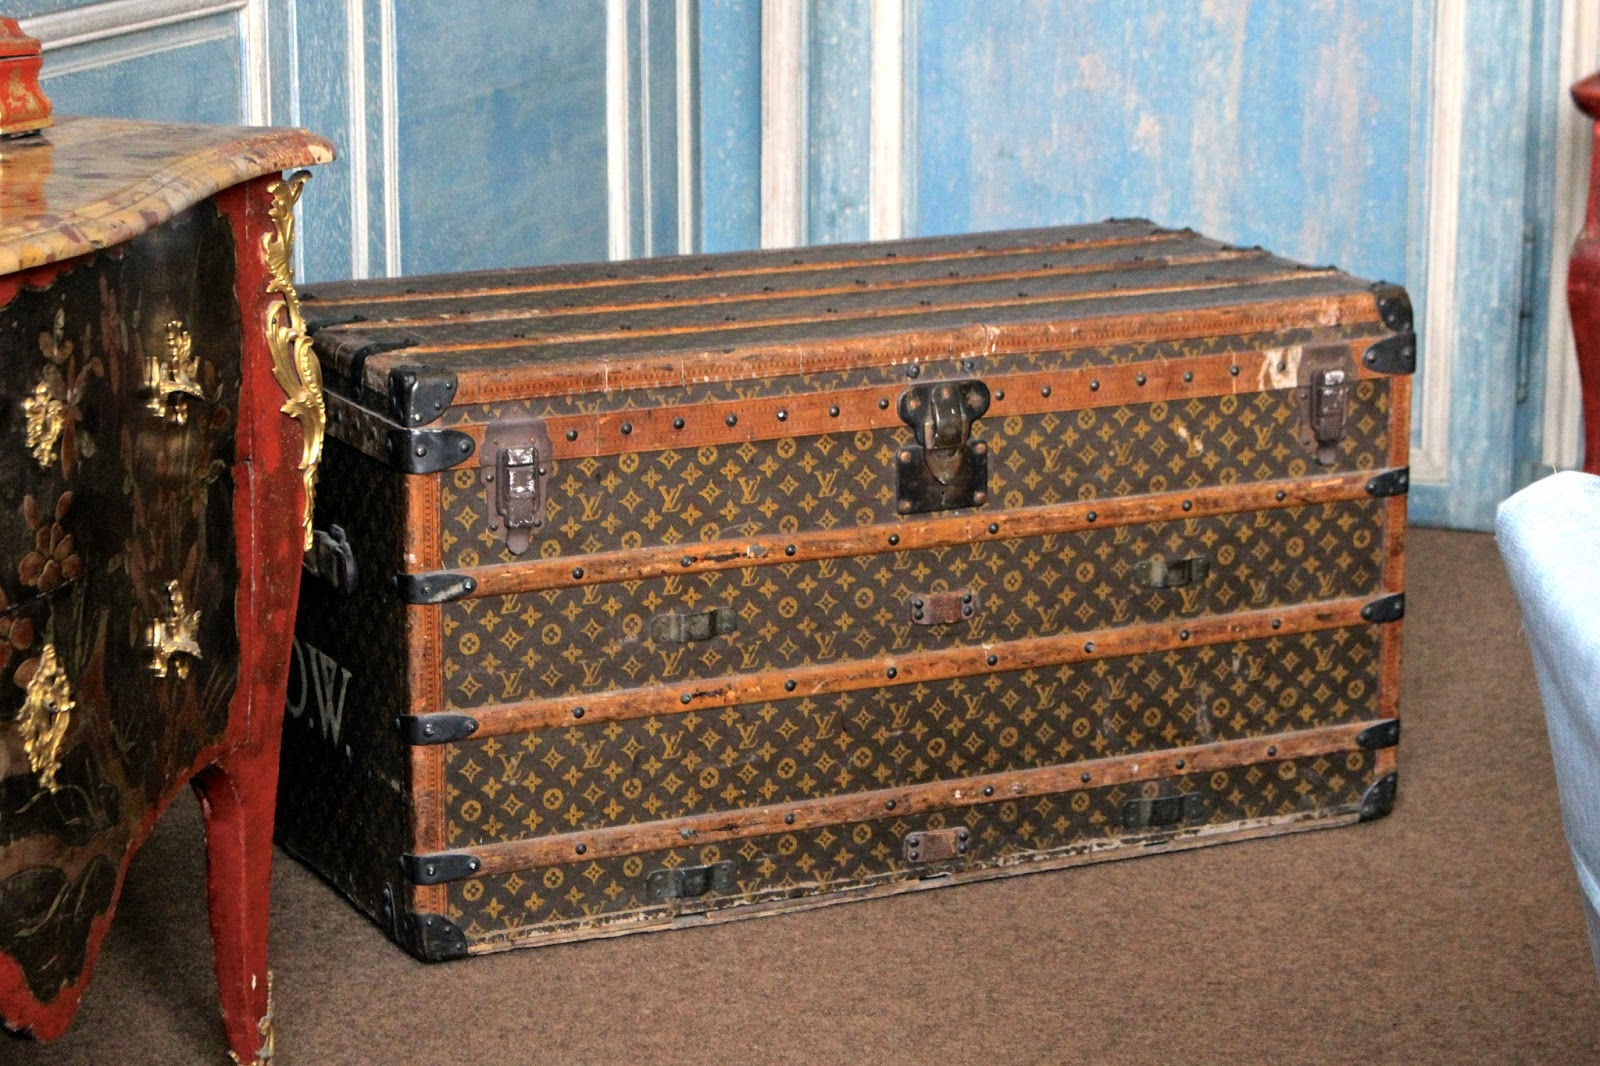 Vintage Louis Vuitton Trunk found at Leeds Castle